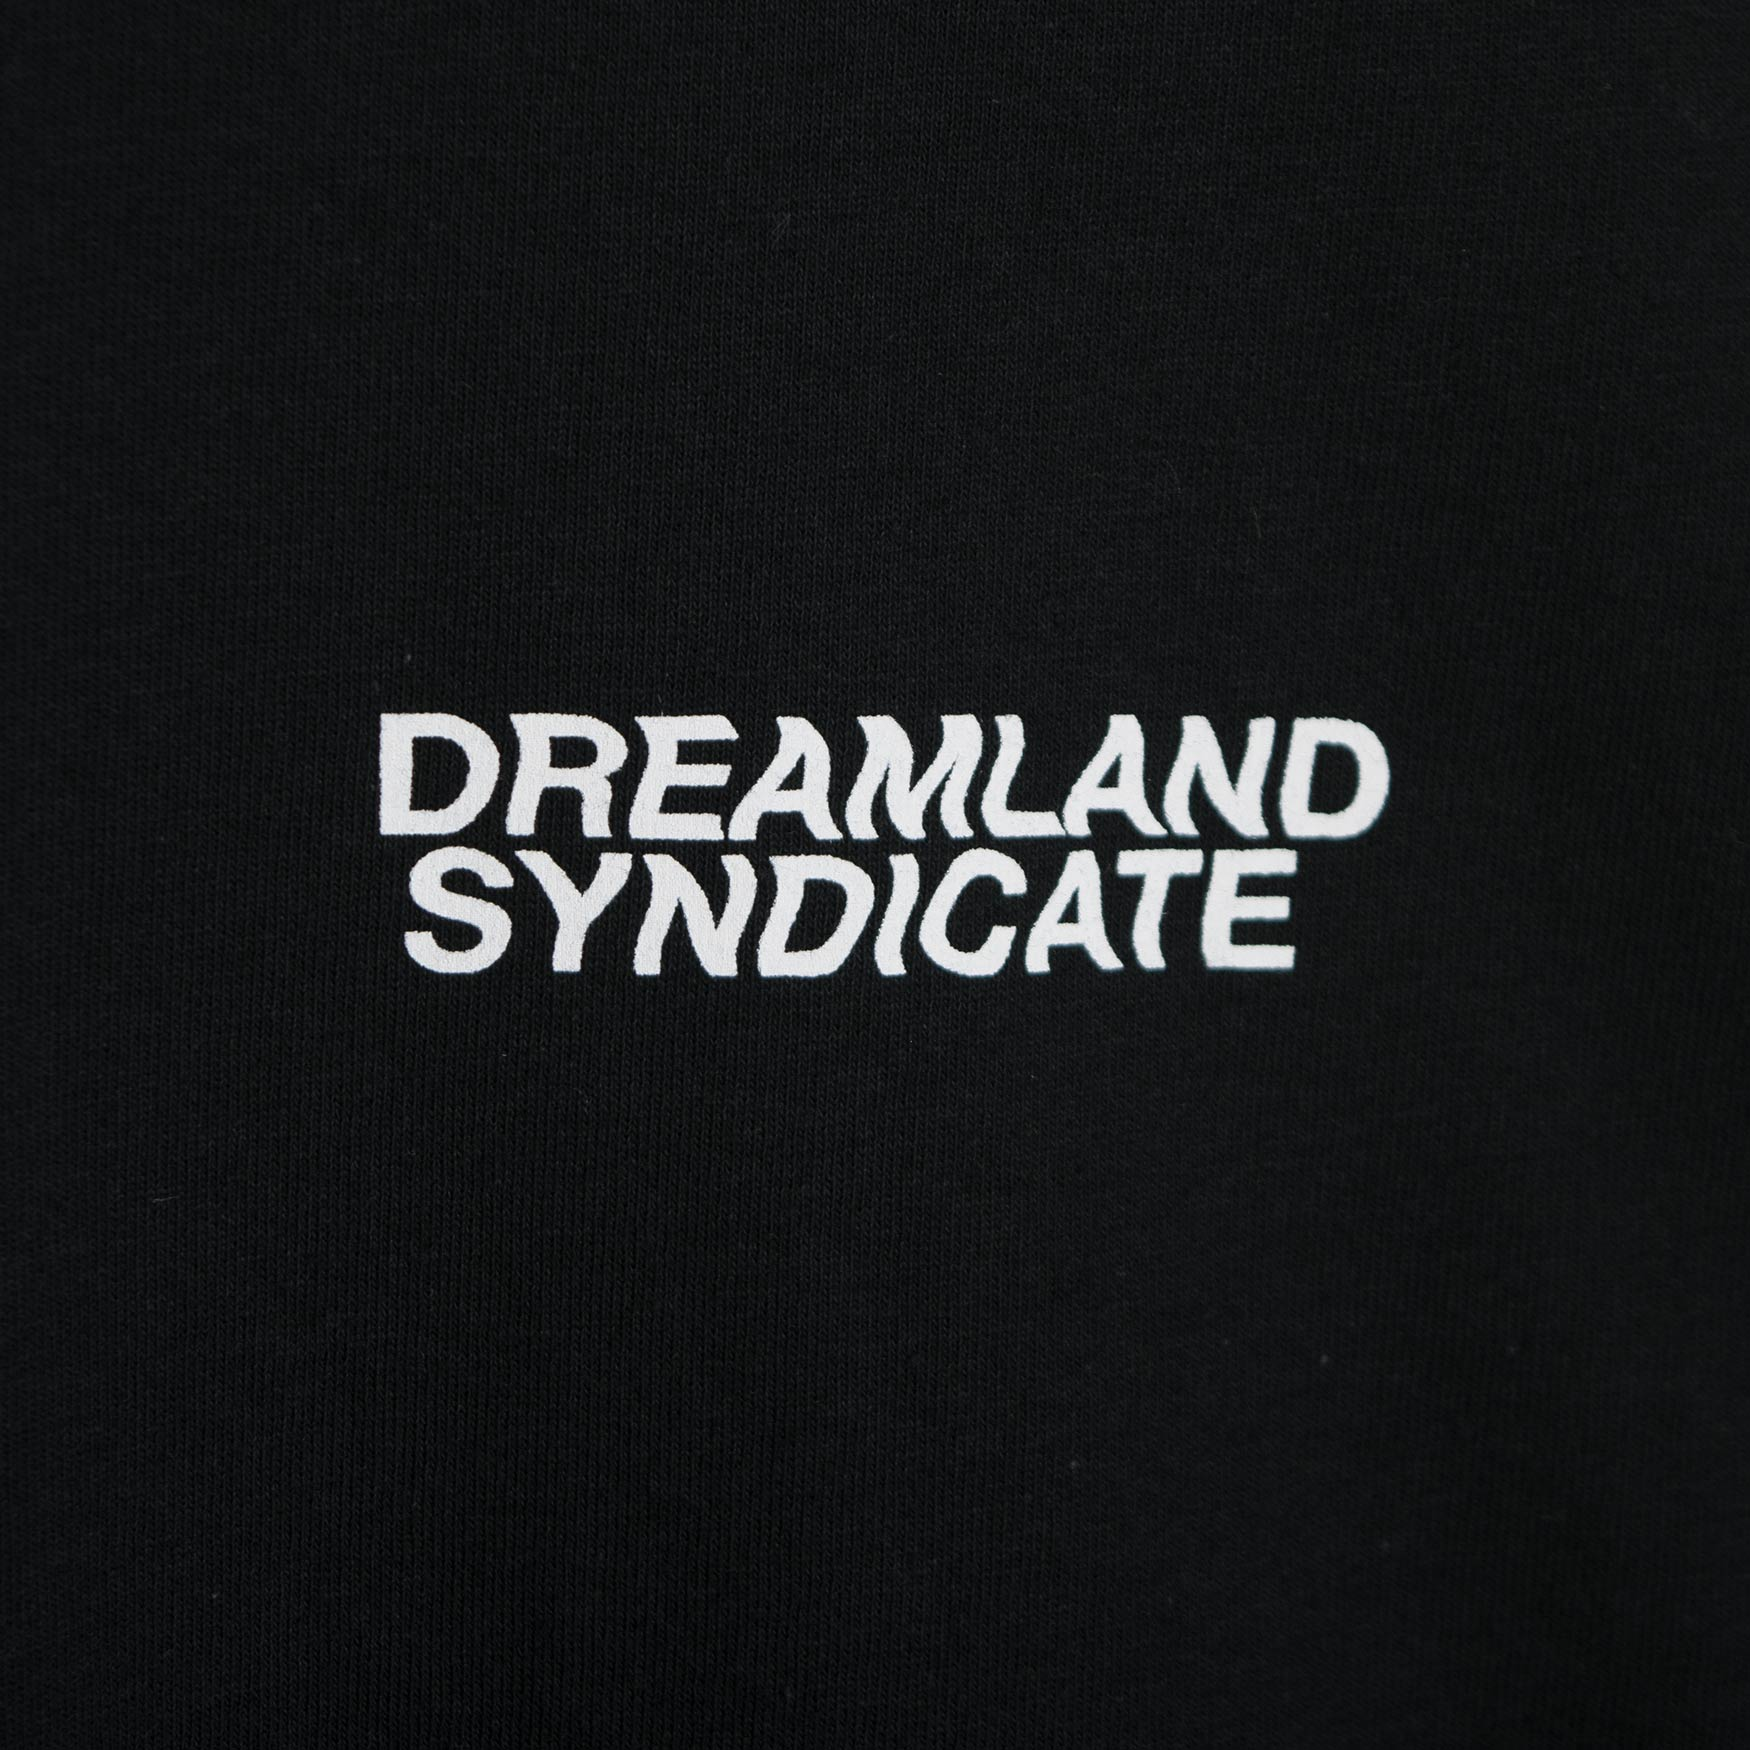 Dreamland Syndicate Contrast Core Logo Long Sleeve T-Shirt - Black Not Listed - CARTOCON